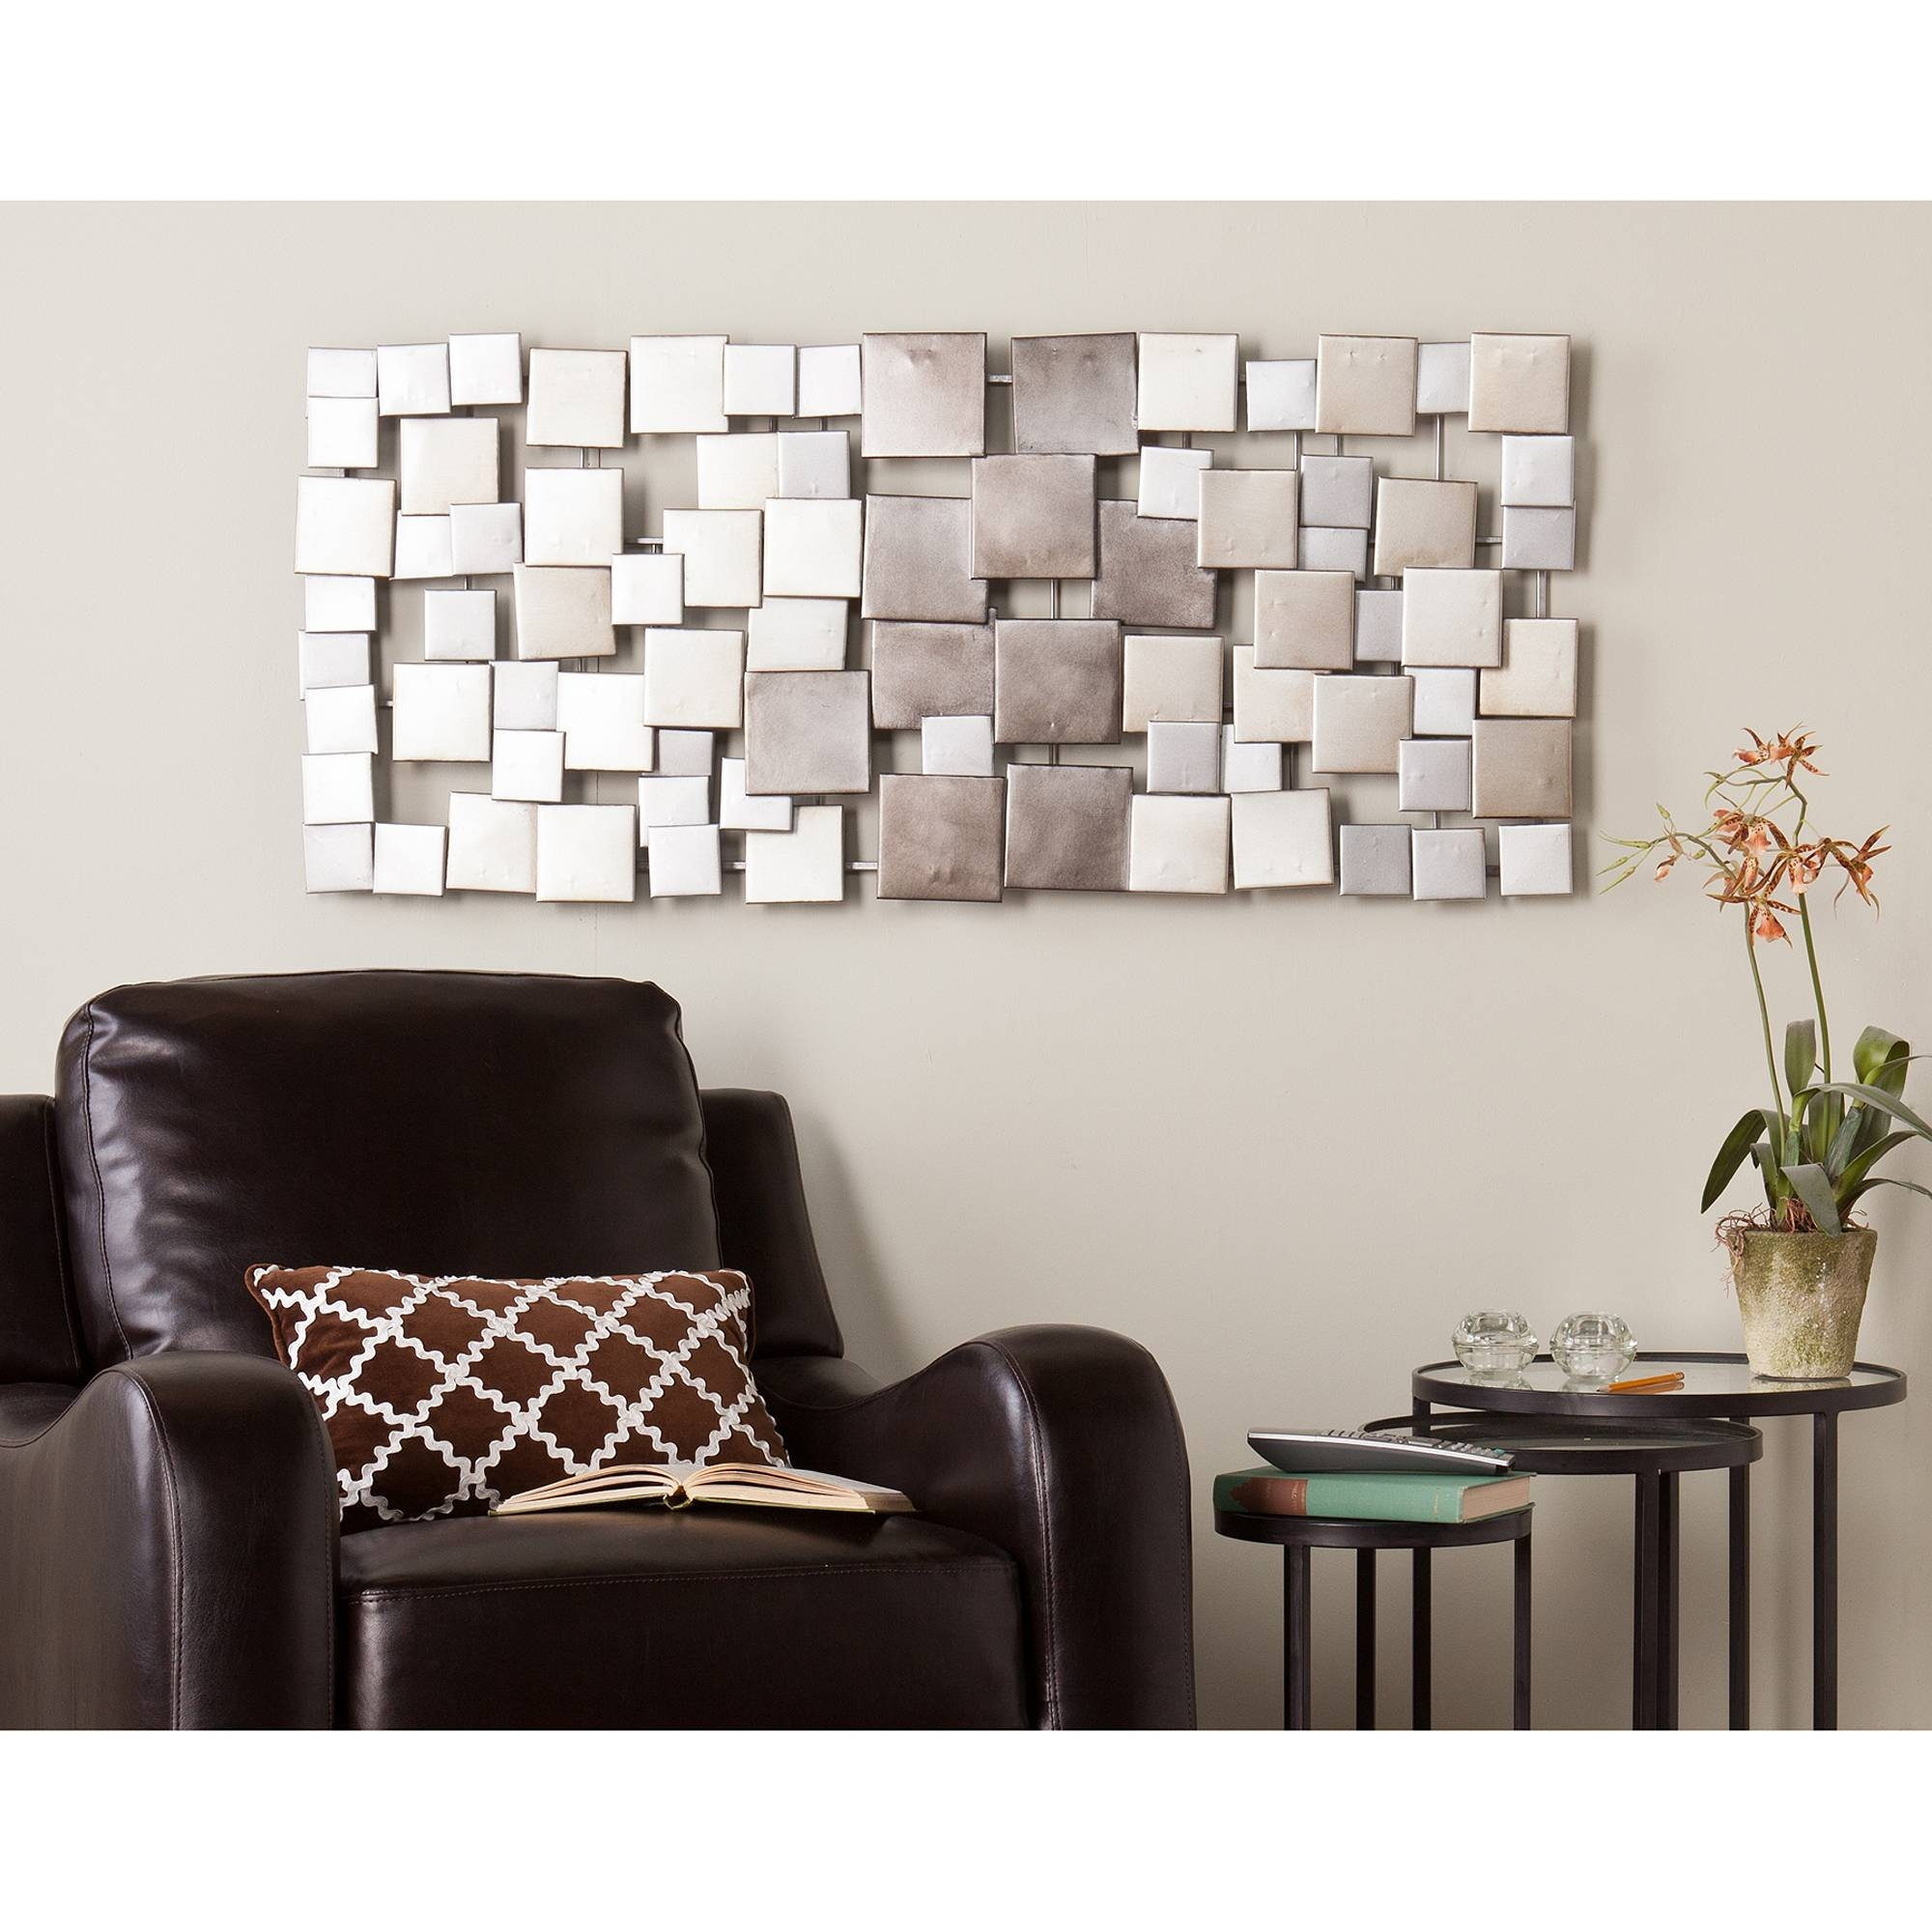 Metal Wall Art – Walmart For Most Current Walmart Metal Wall Art (View 5 of 30)